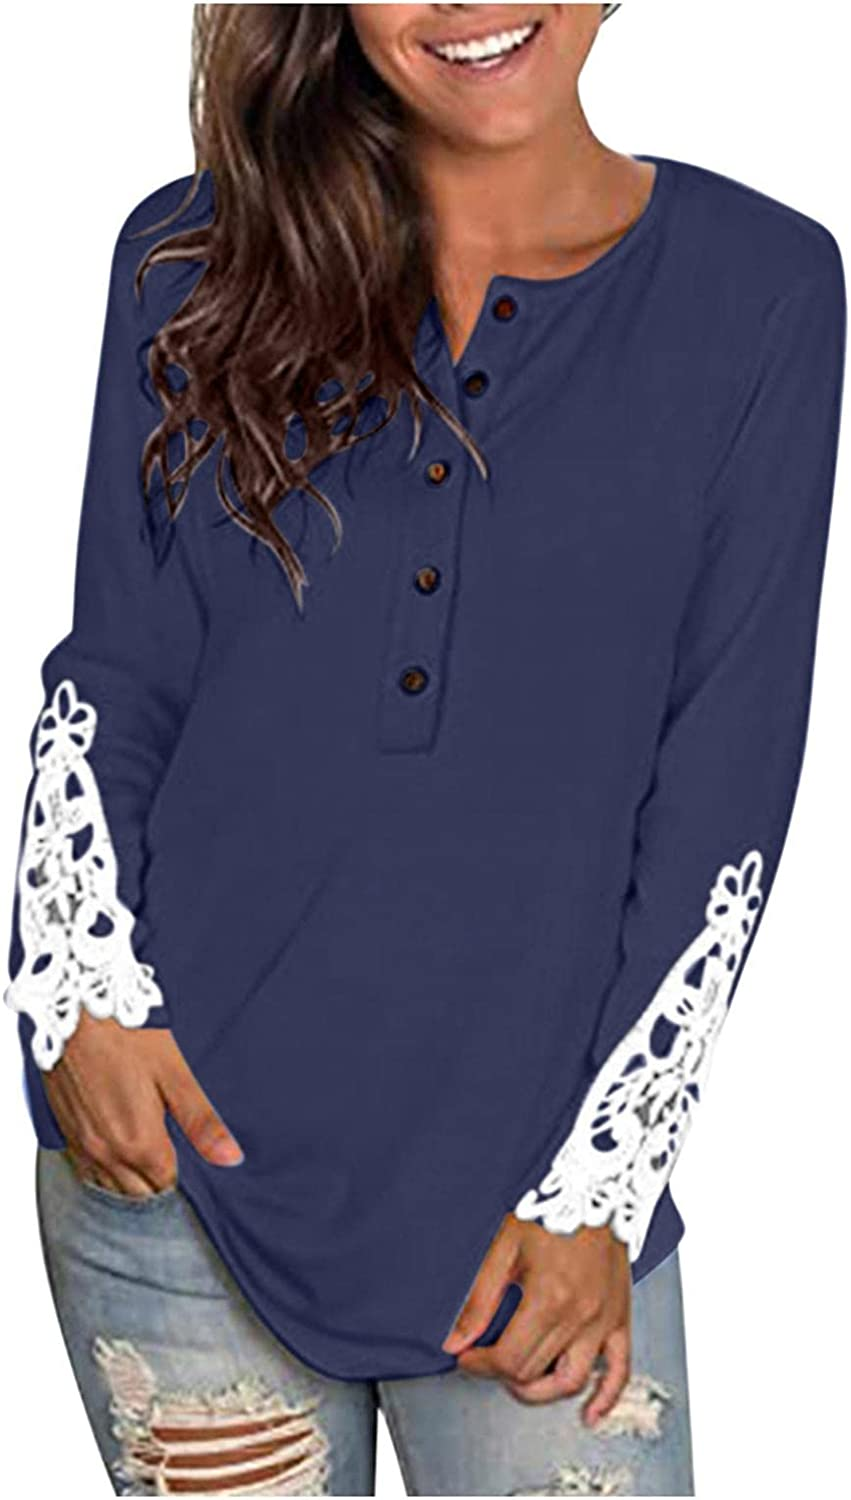 Women Long Sleeve V Neck Button Up Solid Tops Blouses Trendy Slim Fit Lace Sleeves Casual Henley Shirts Tunic